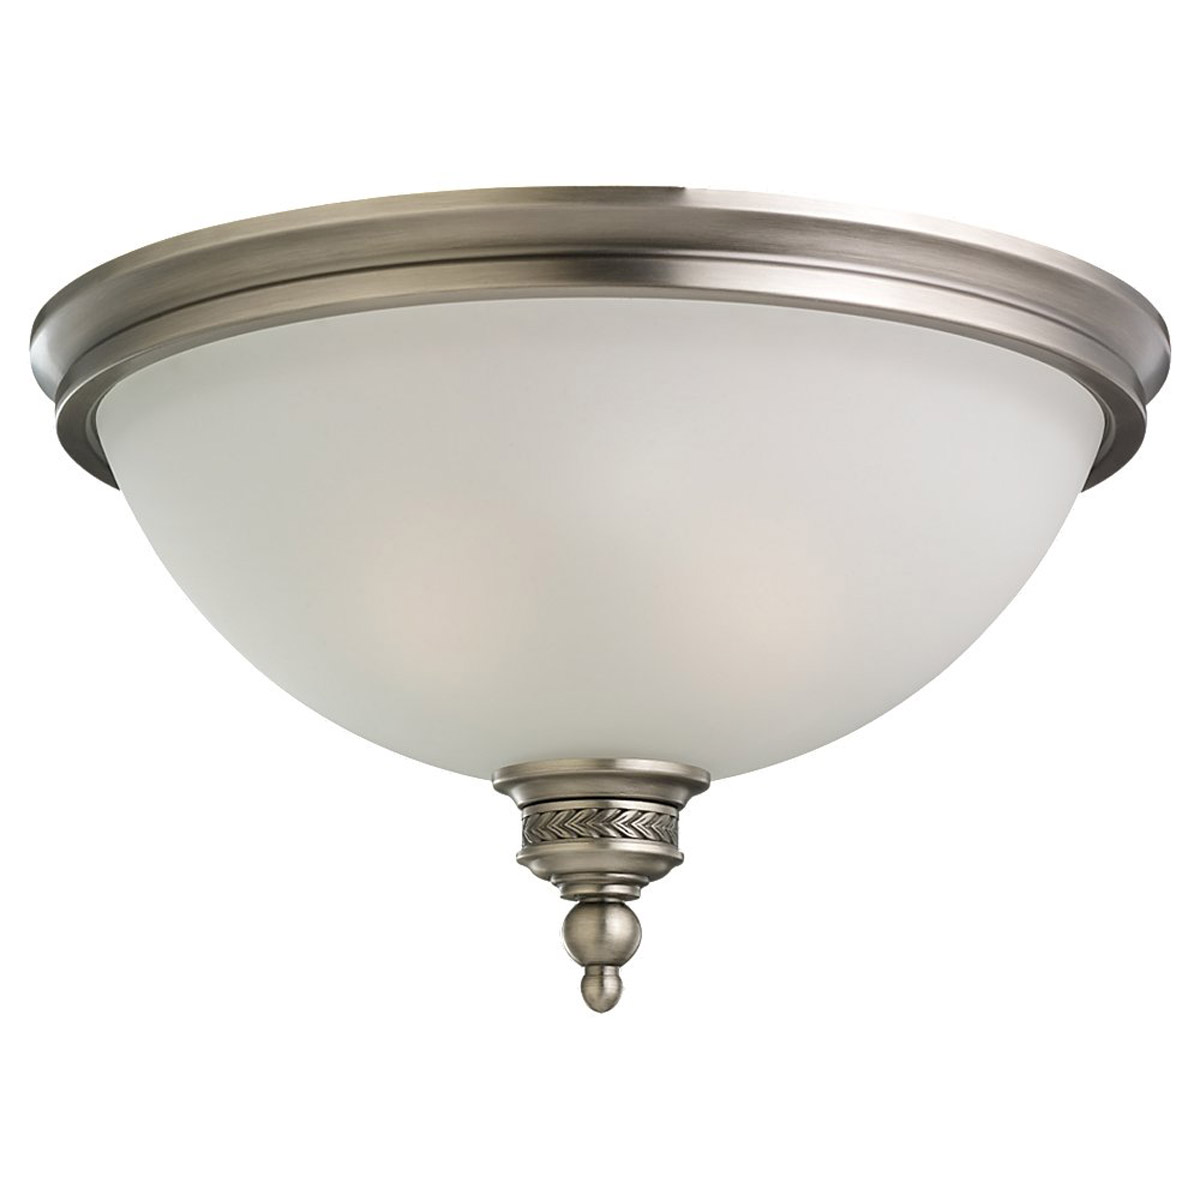 Sea Gull 75350-965 Laurel Leaf 2 Light 16 inch Antique Brushed Nickel Flush Mount Ceiling Light photo